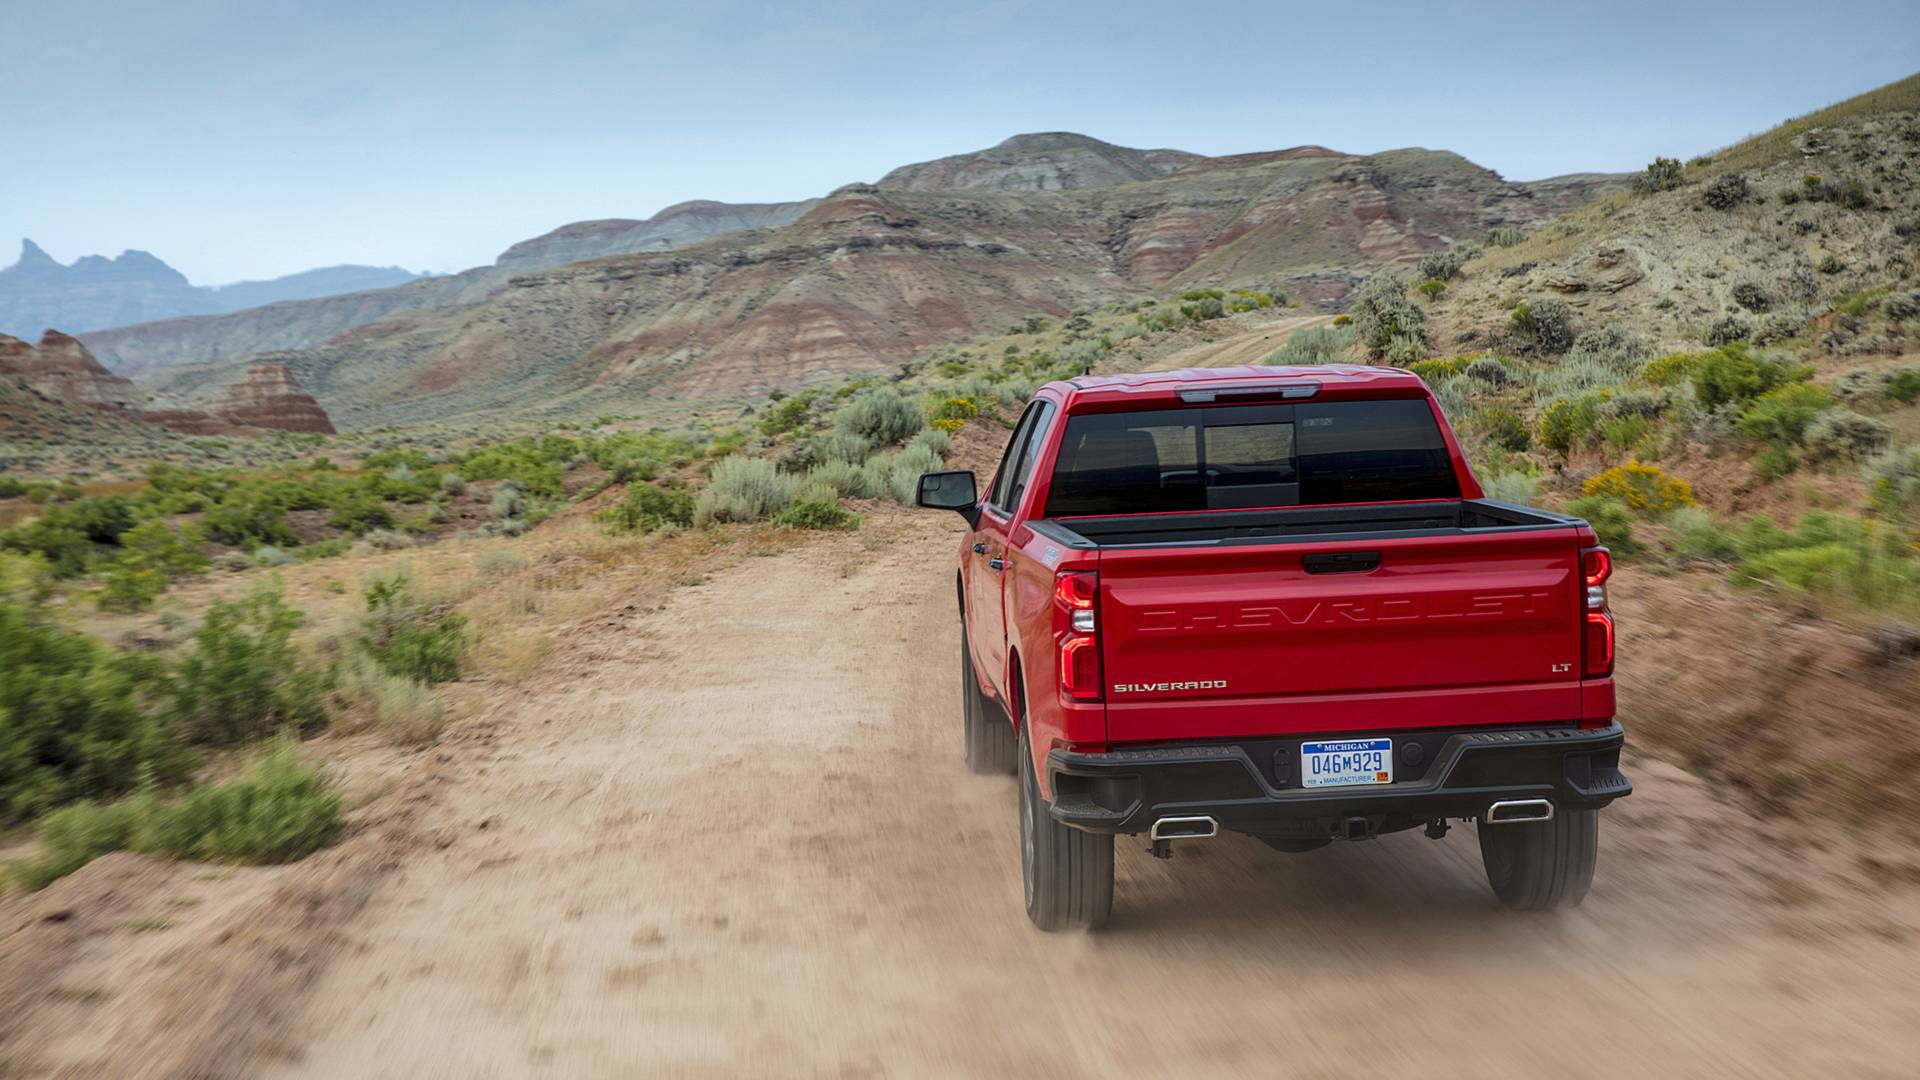 2019 Chevrolet Silverado First Drive: Risky Business